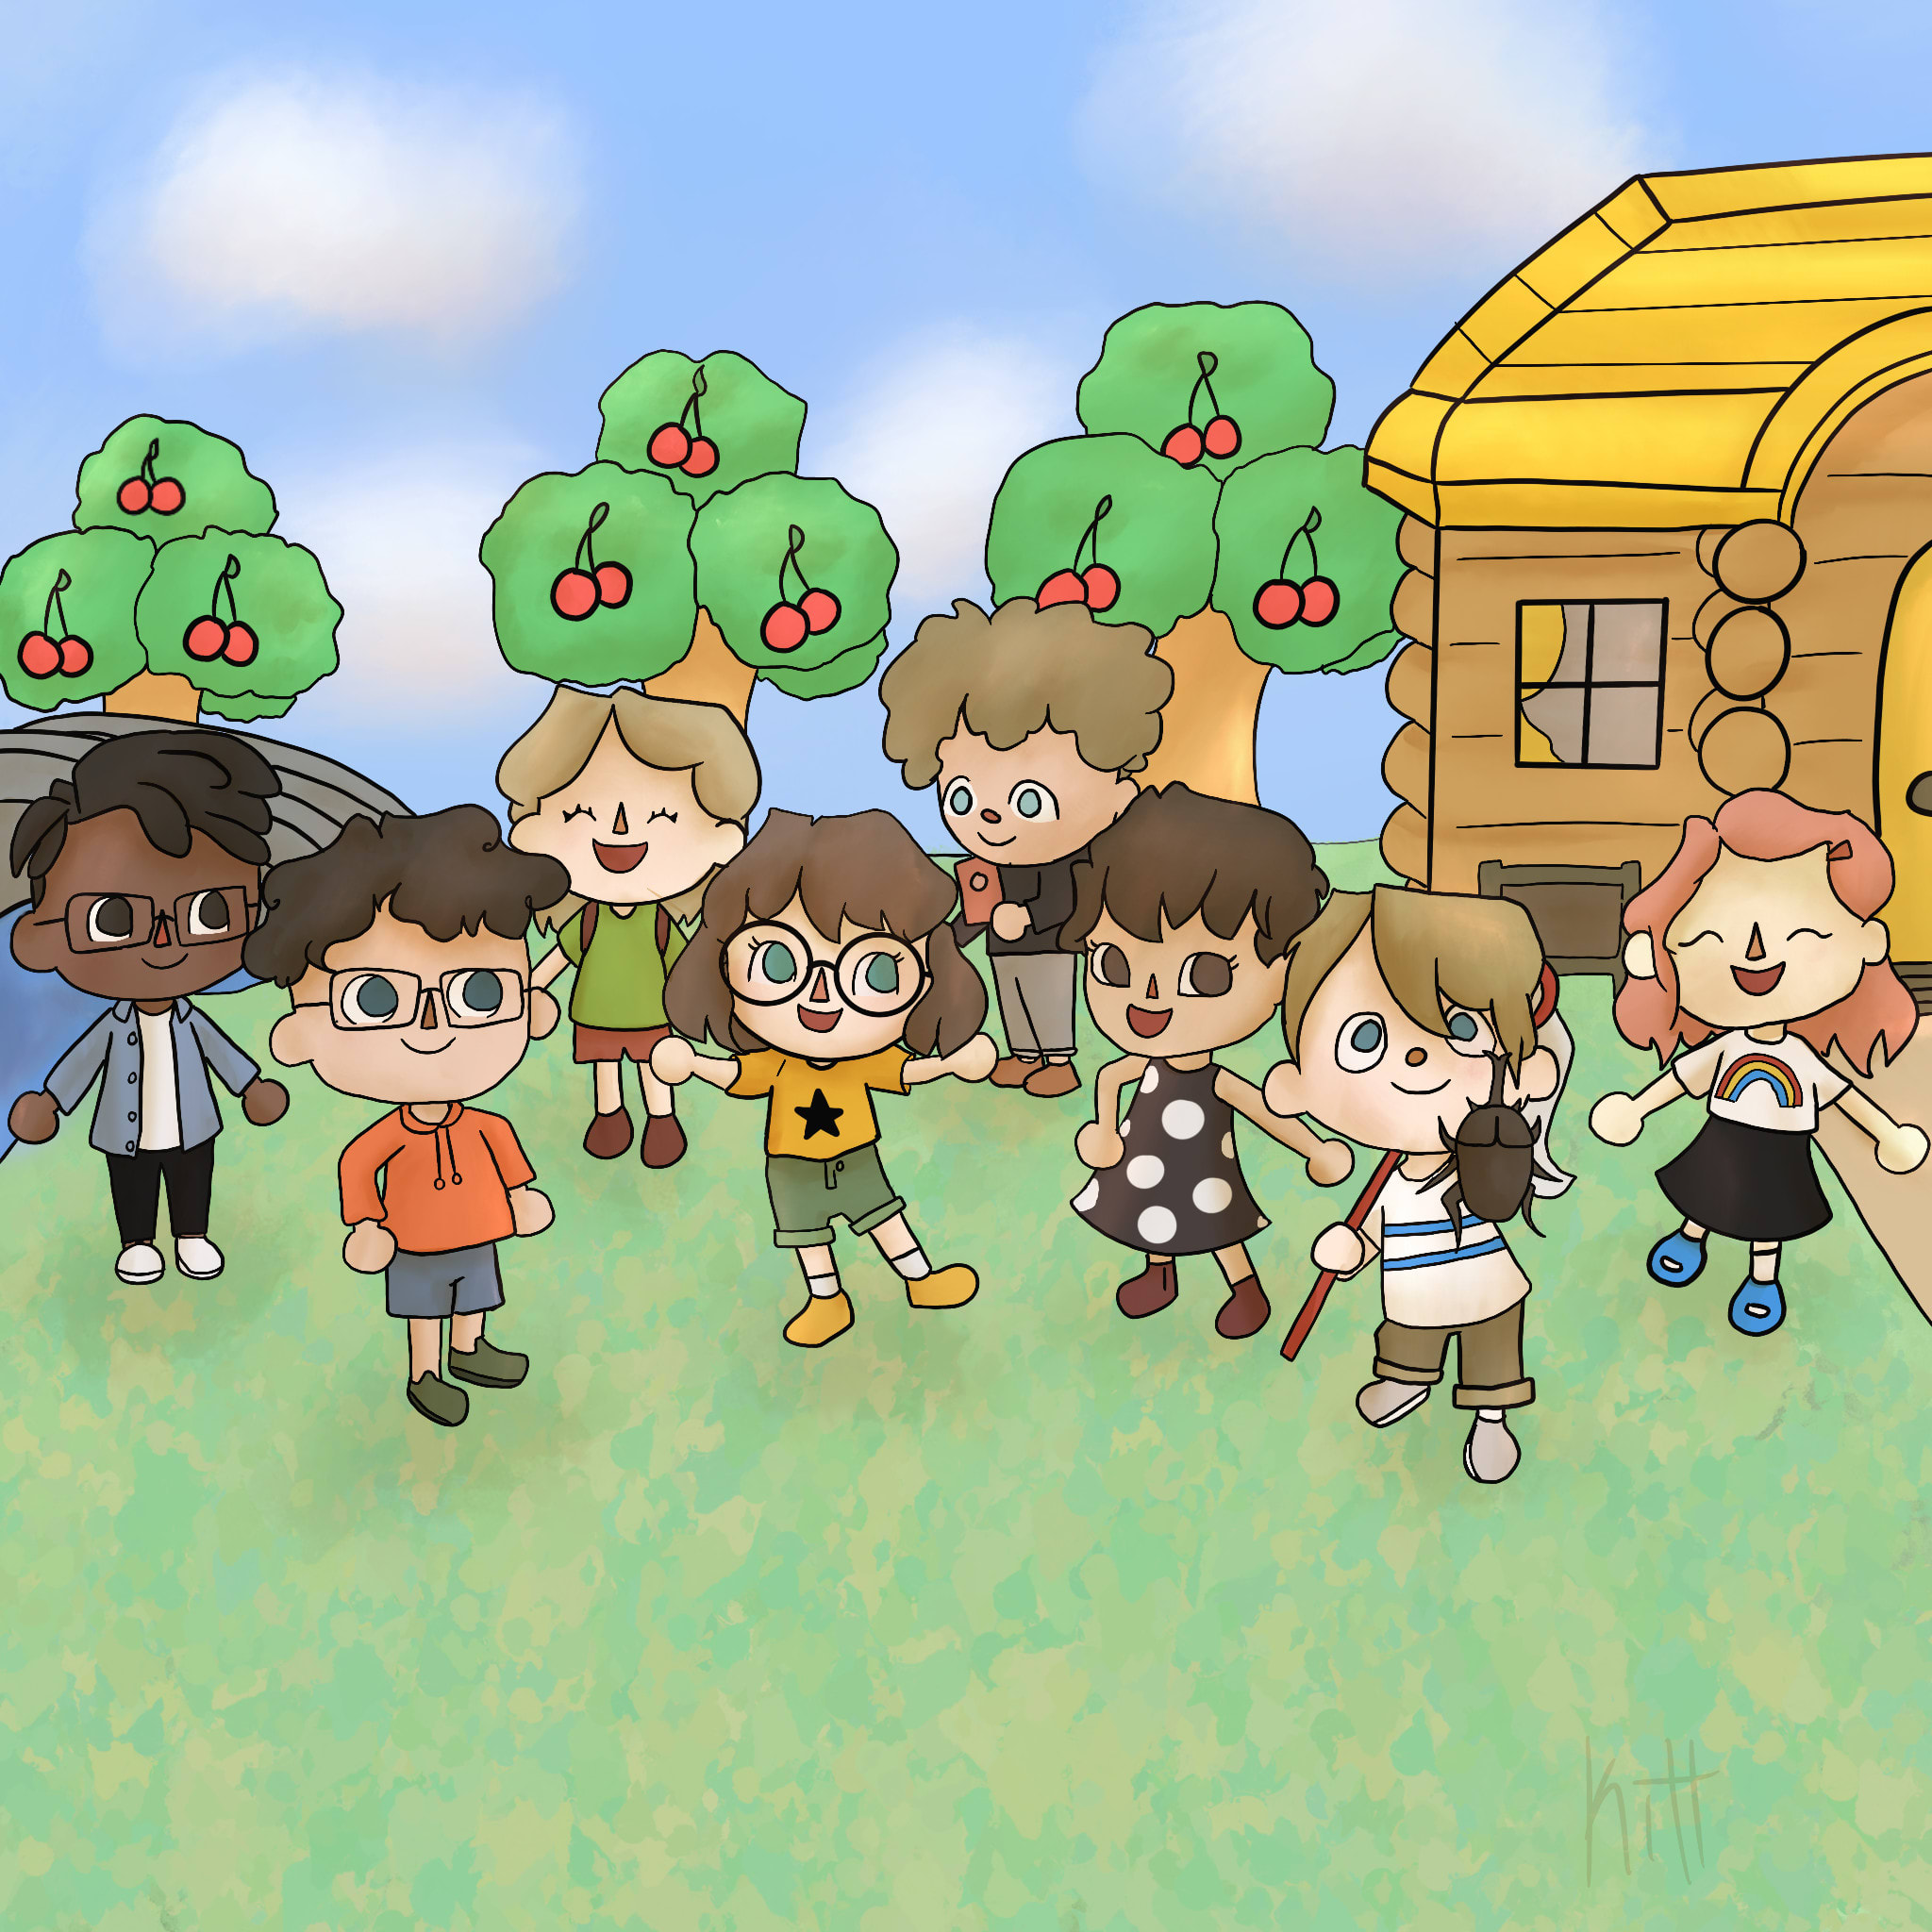 Draw In An Animal Crossing Style By Kitgoshdarnit